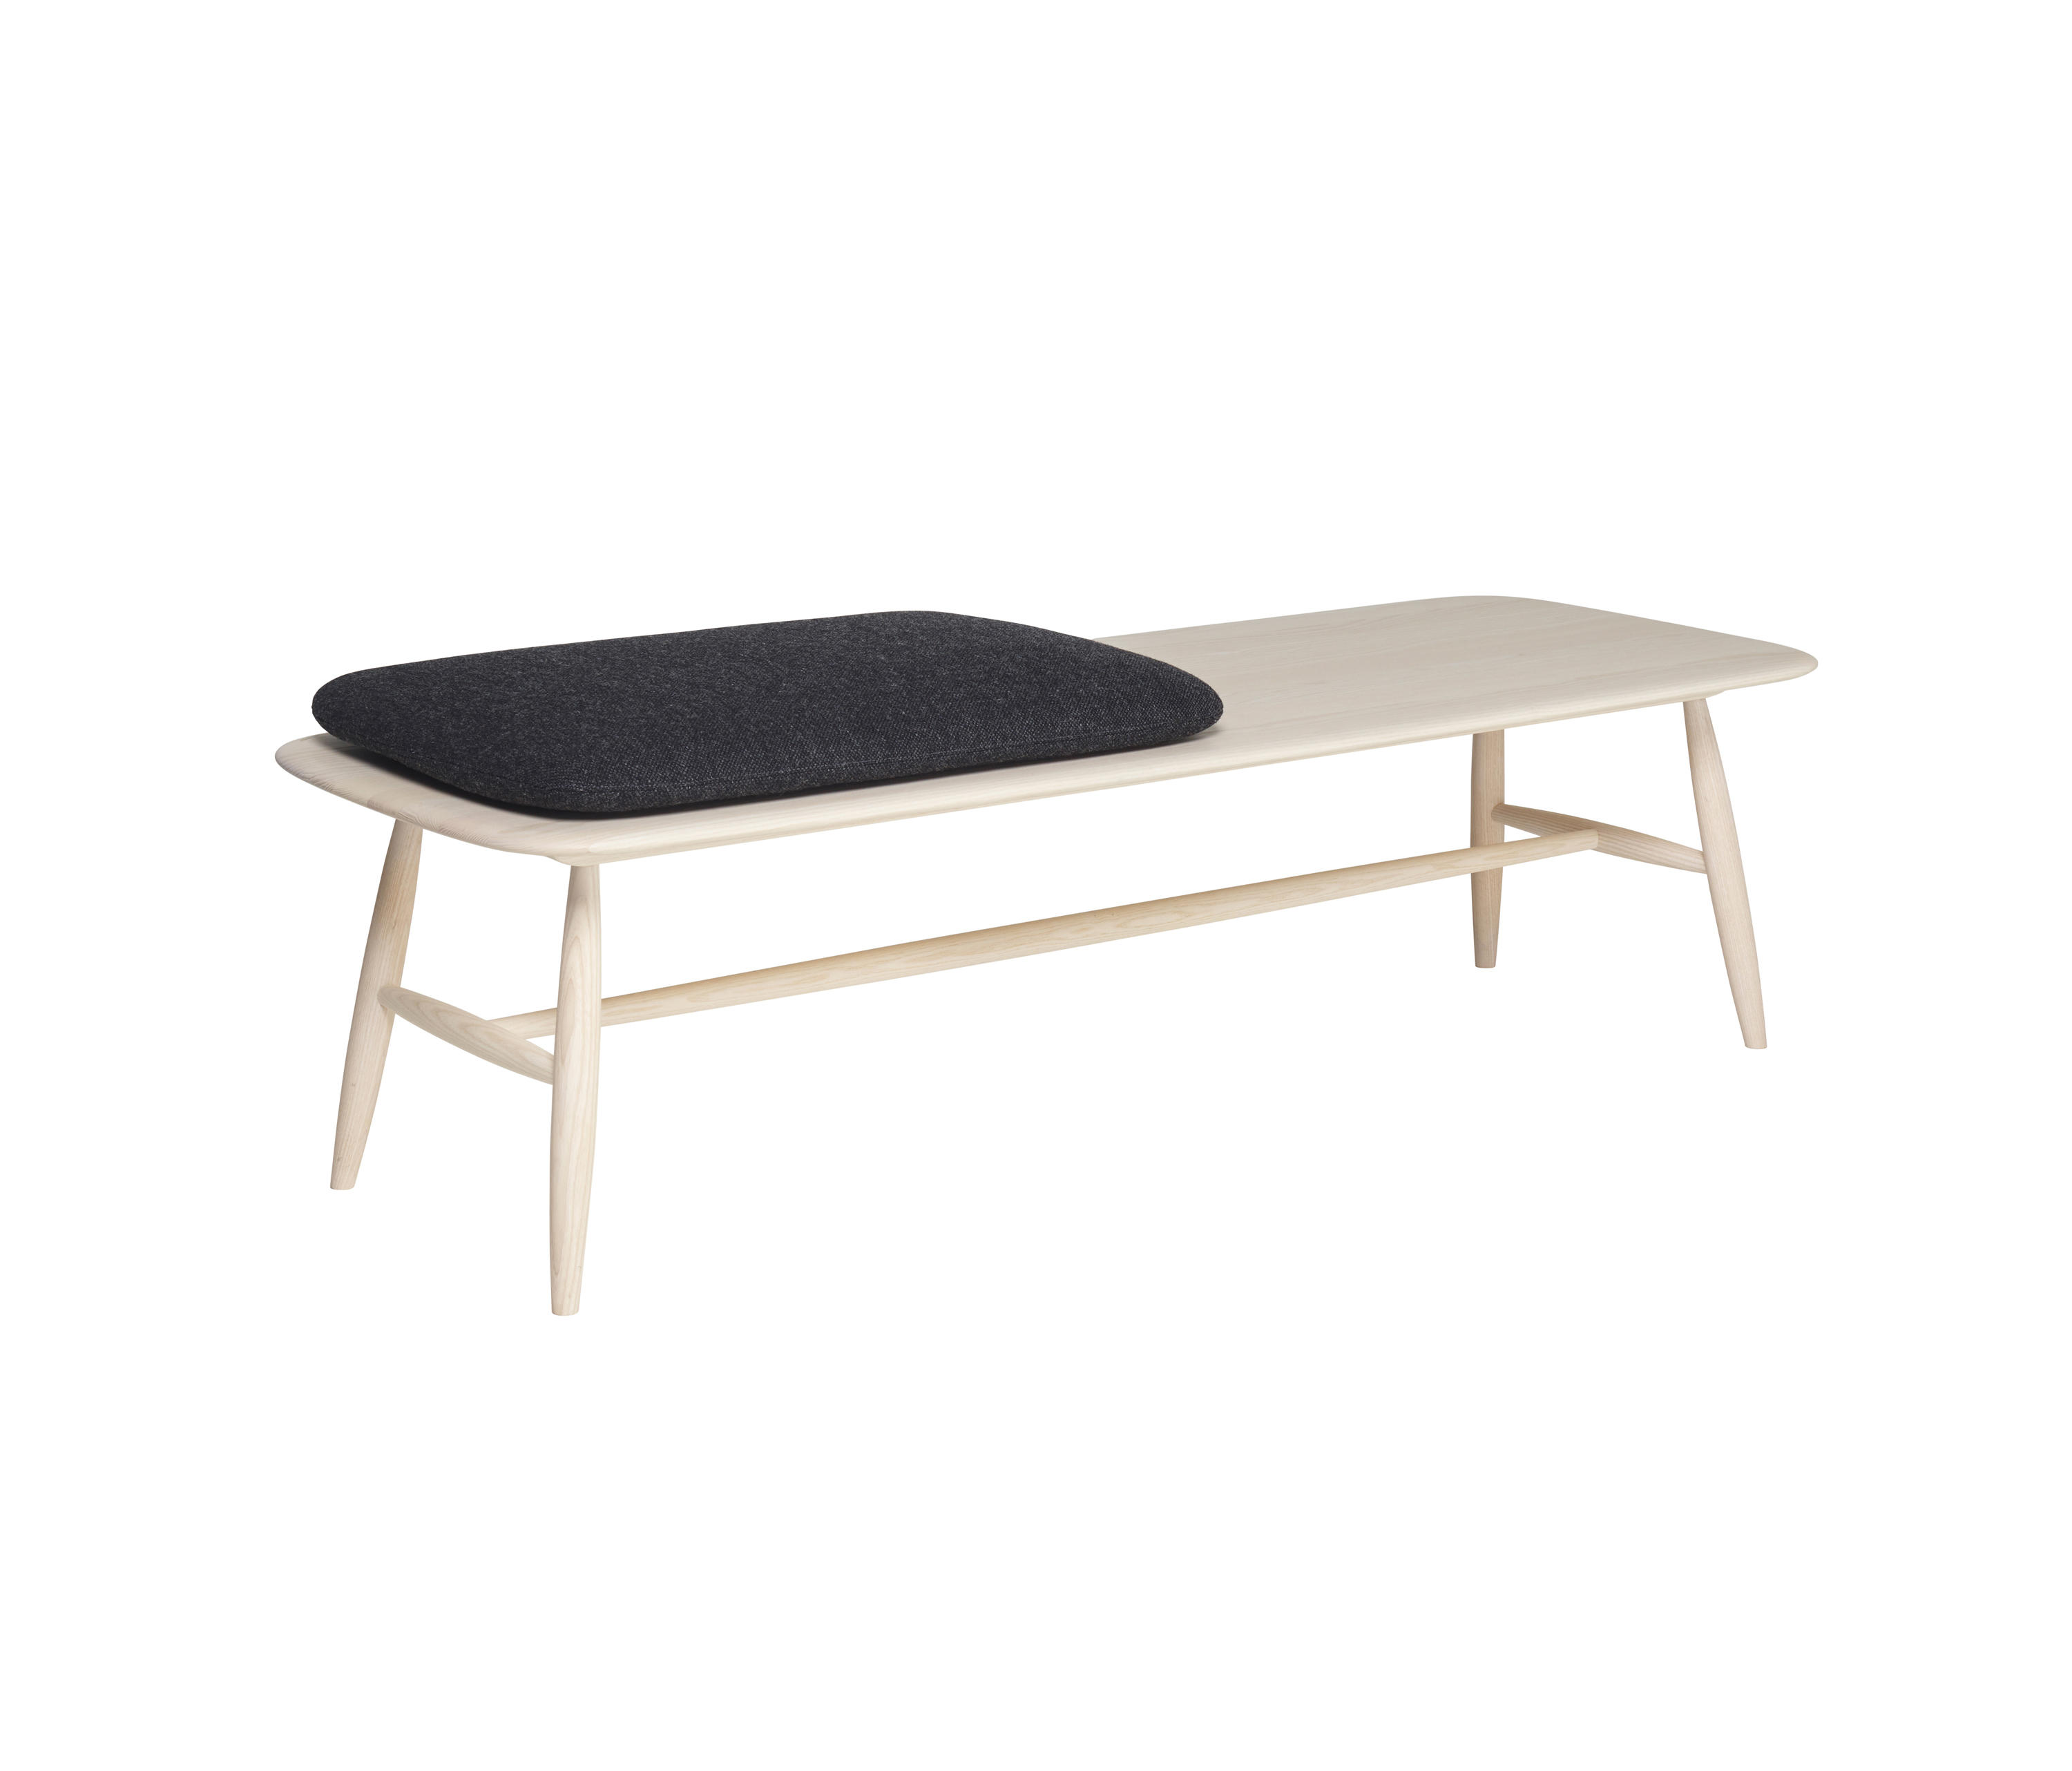 Von Bench With Pad Mobilier Design Architonic